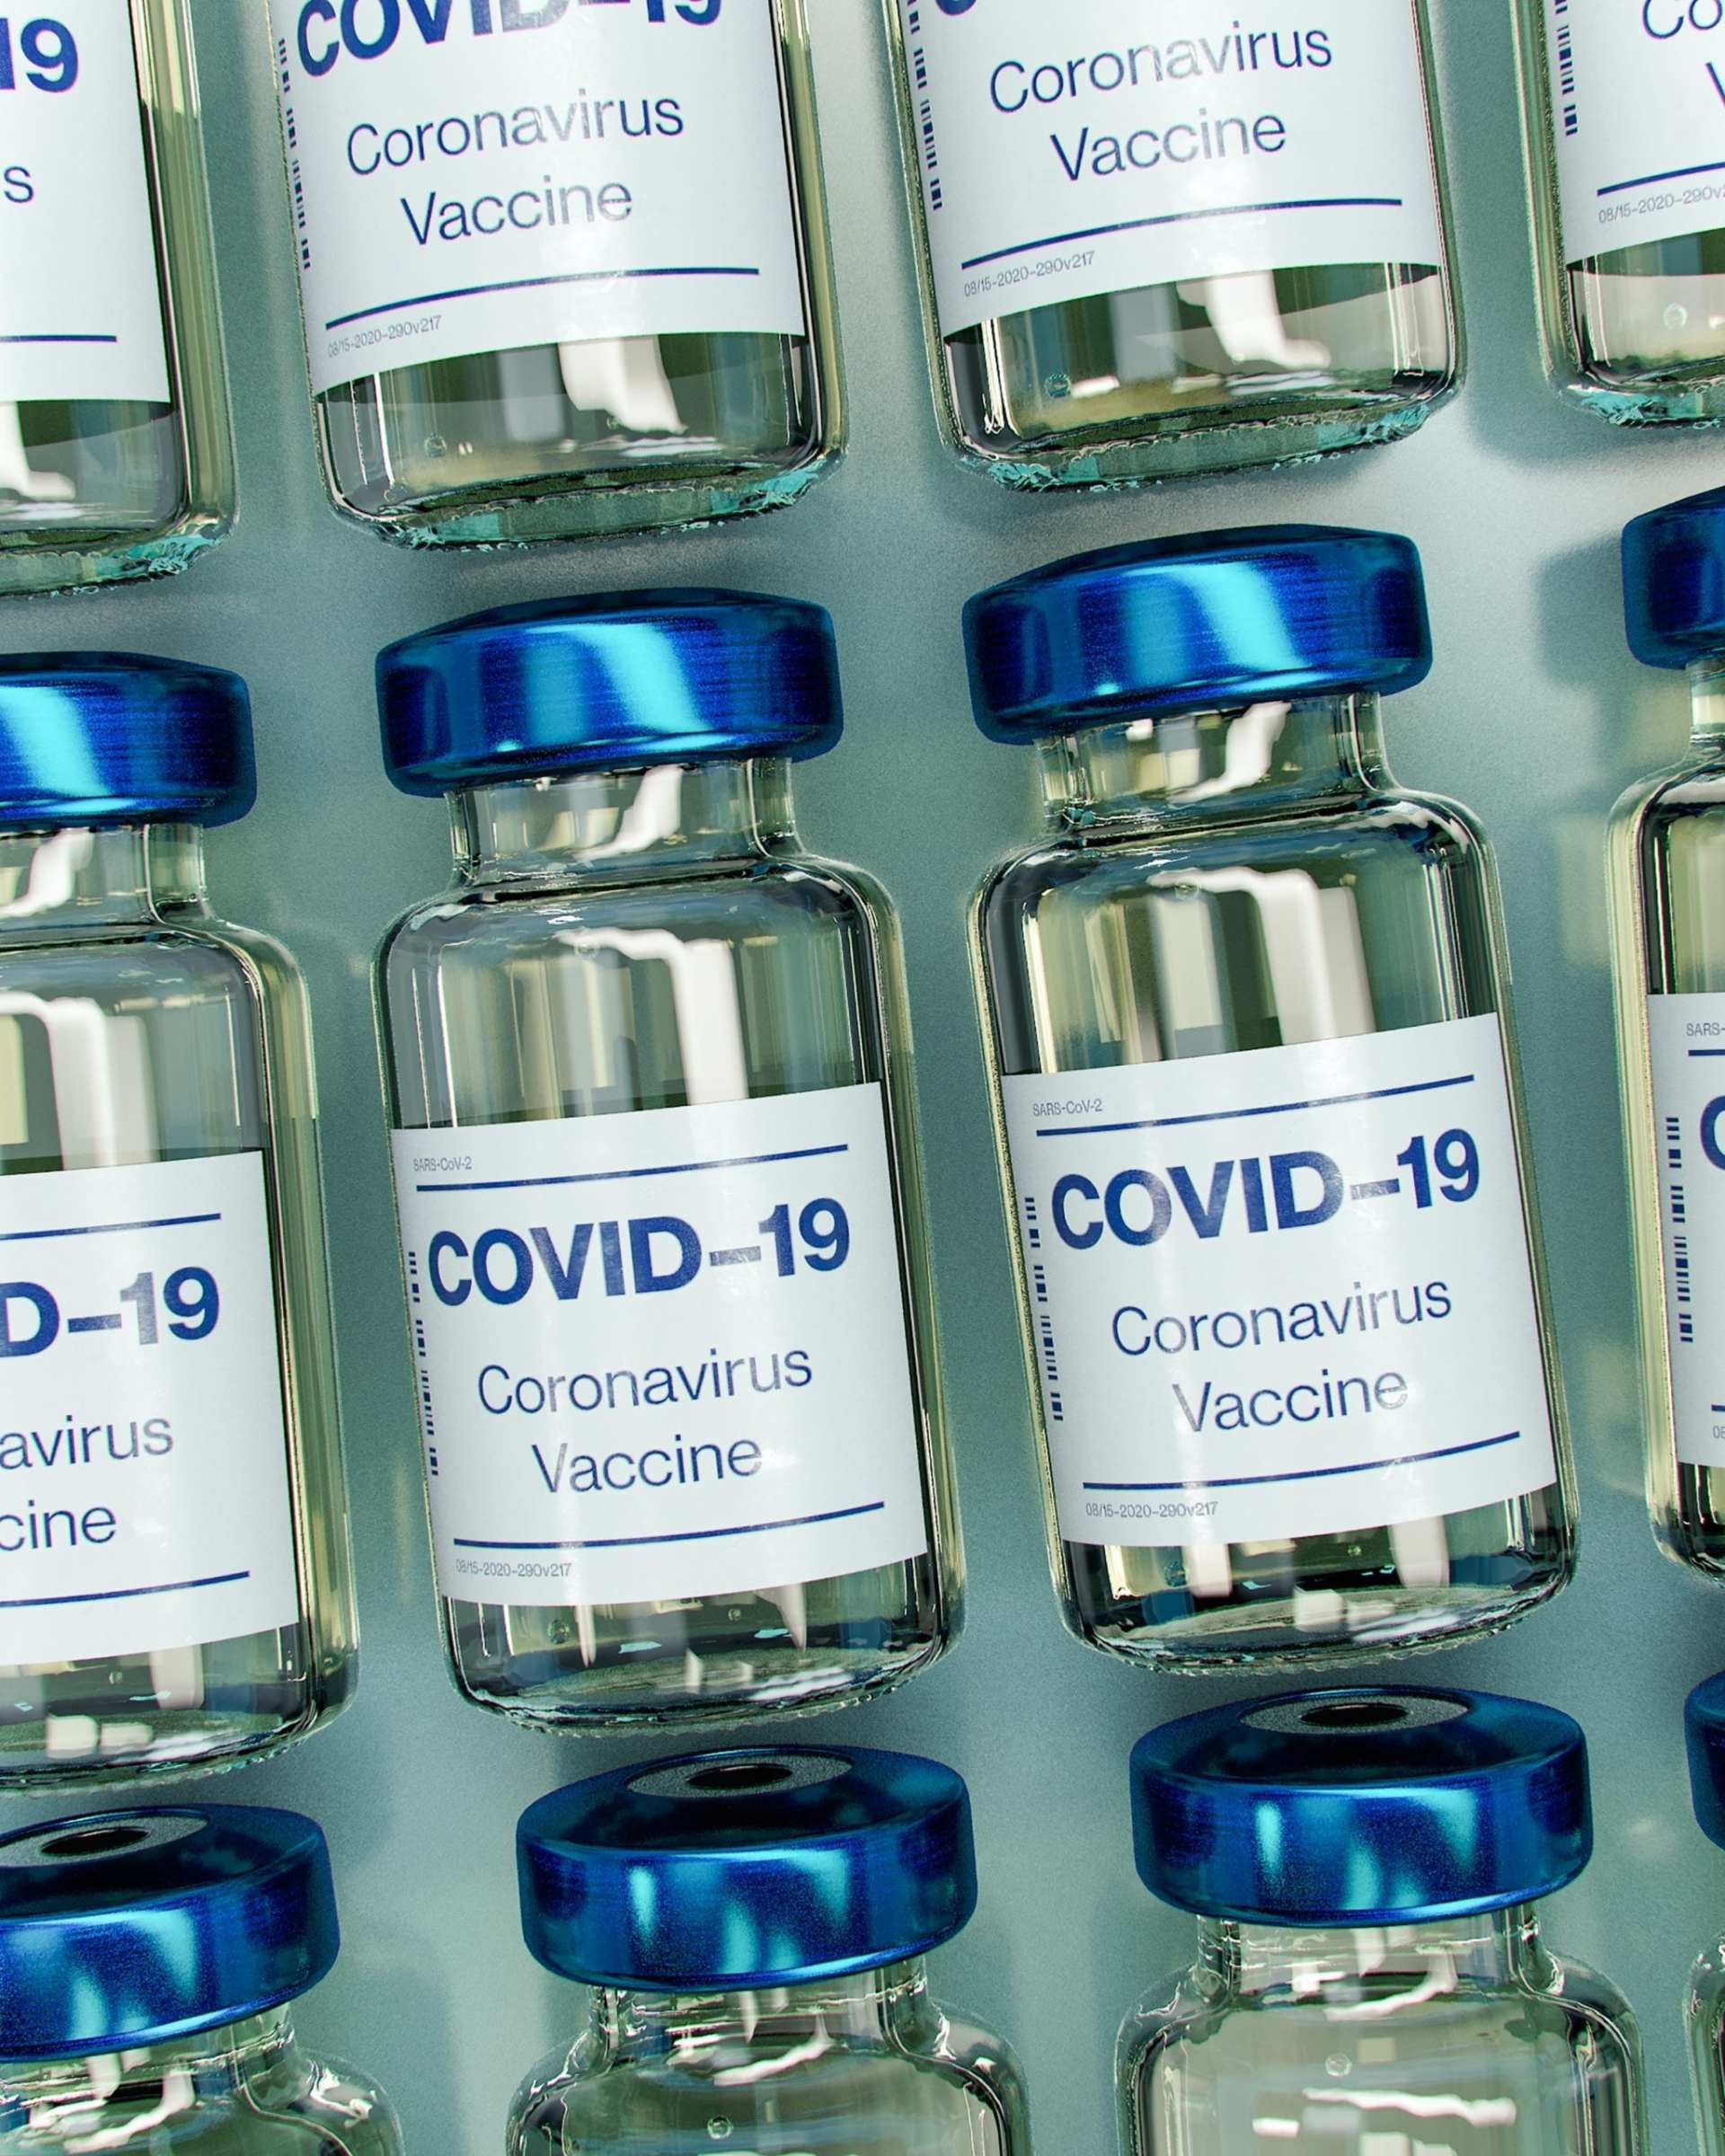 A mock-up of the COVID vaccine. Photo by Daniel Schludi on Unsplash